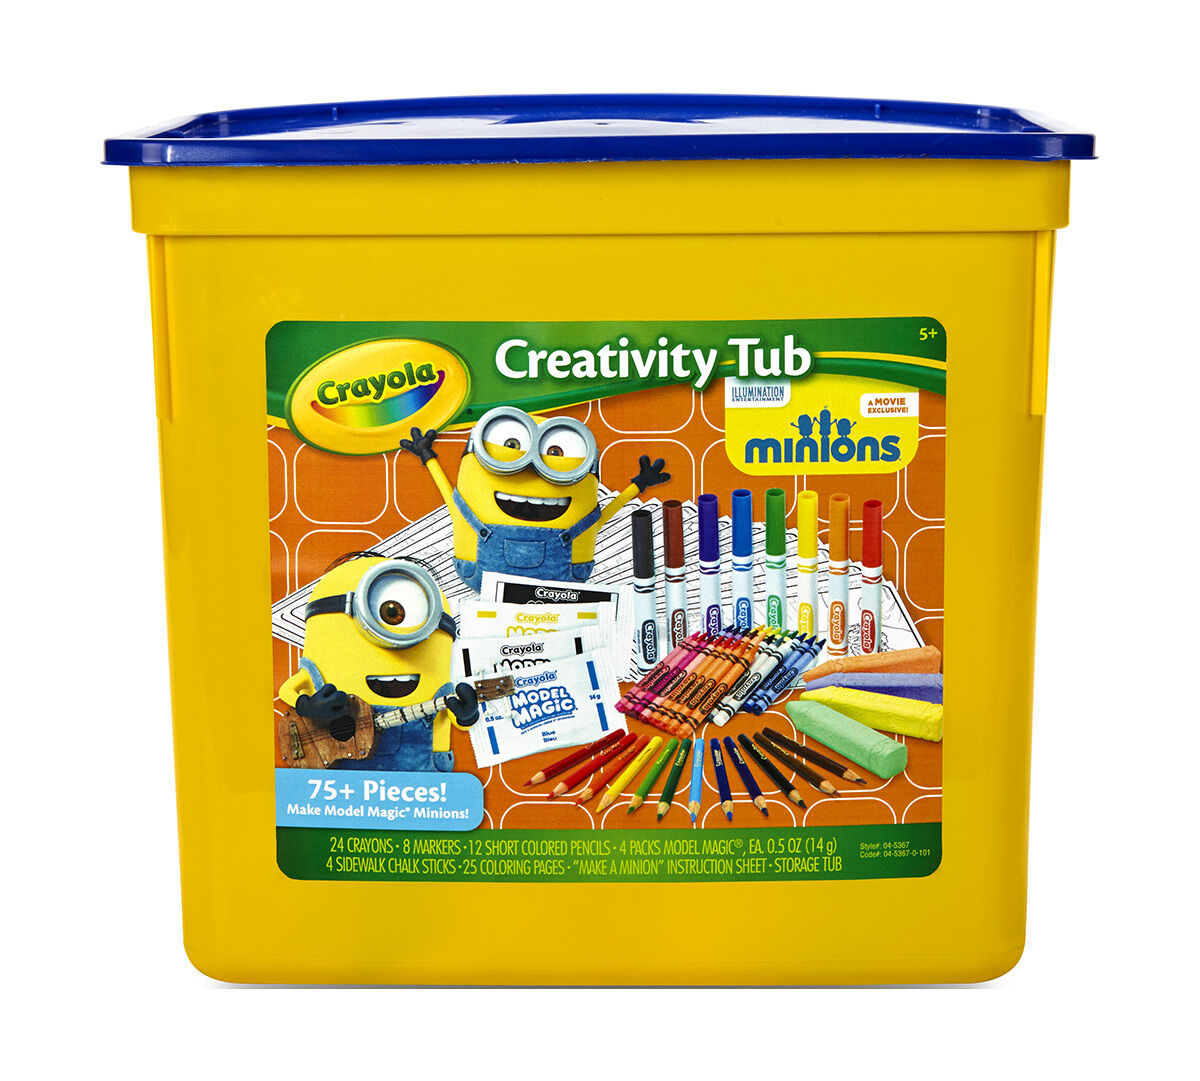 Creativity Tub, Minions